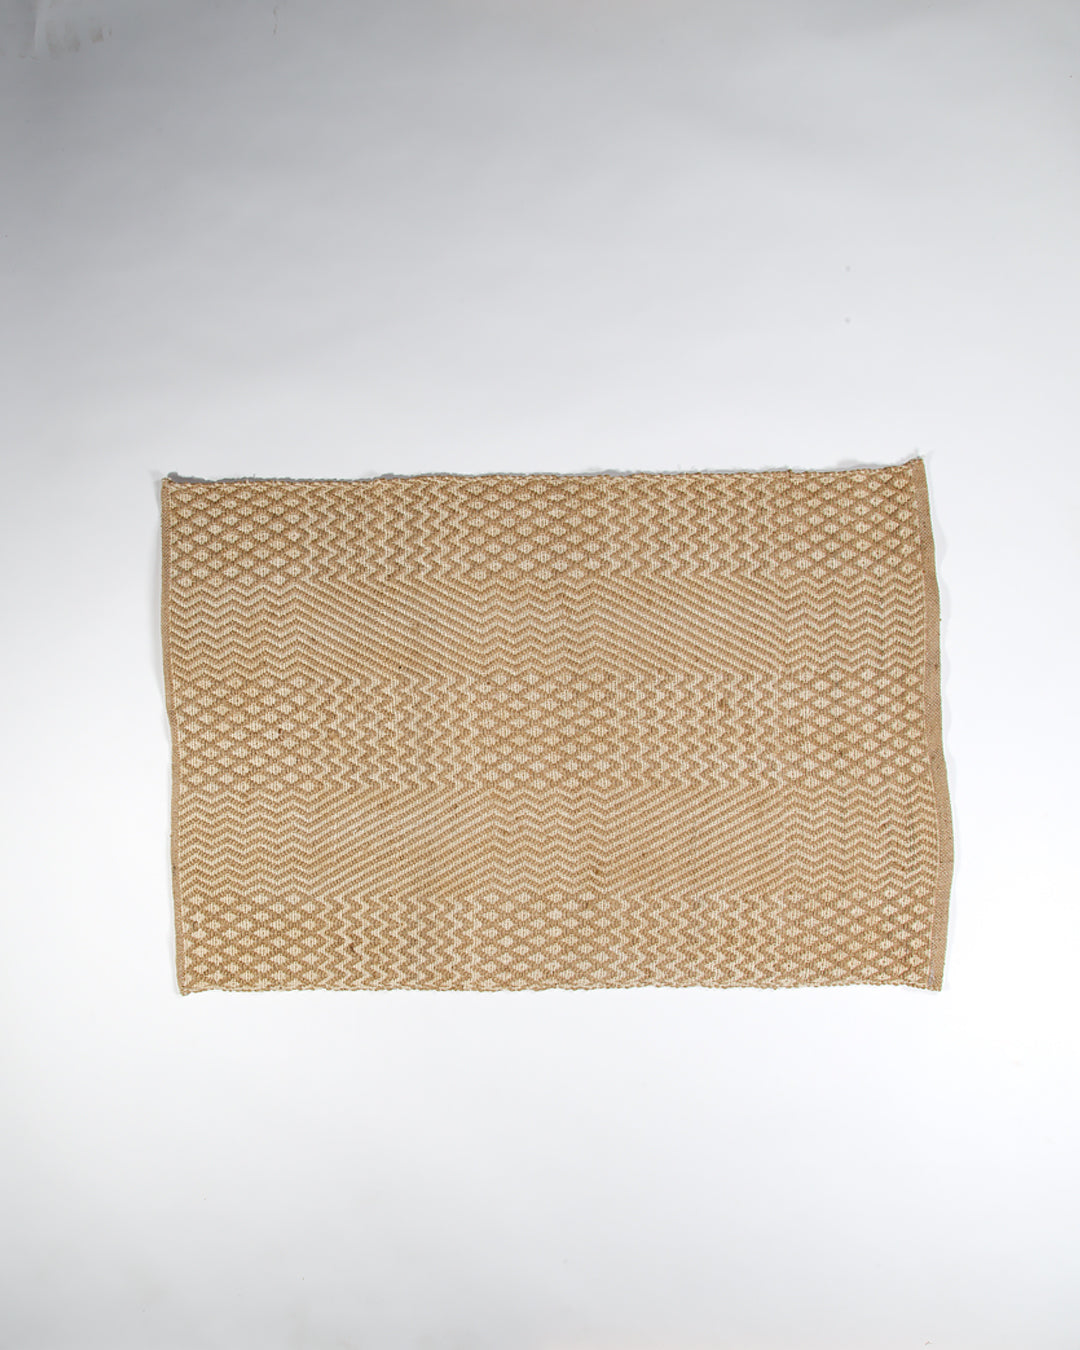 Jute and Cotton Thread Rug, Natural, Multi Pattern, 60x90cm